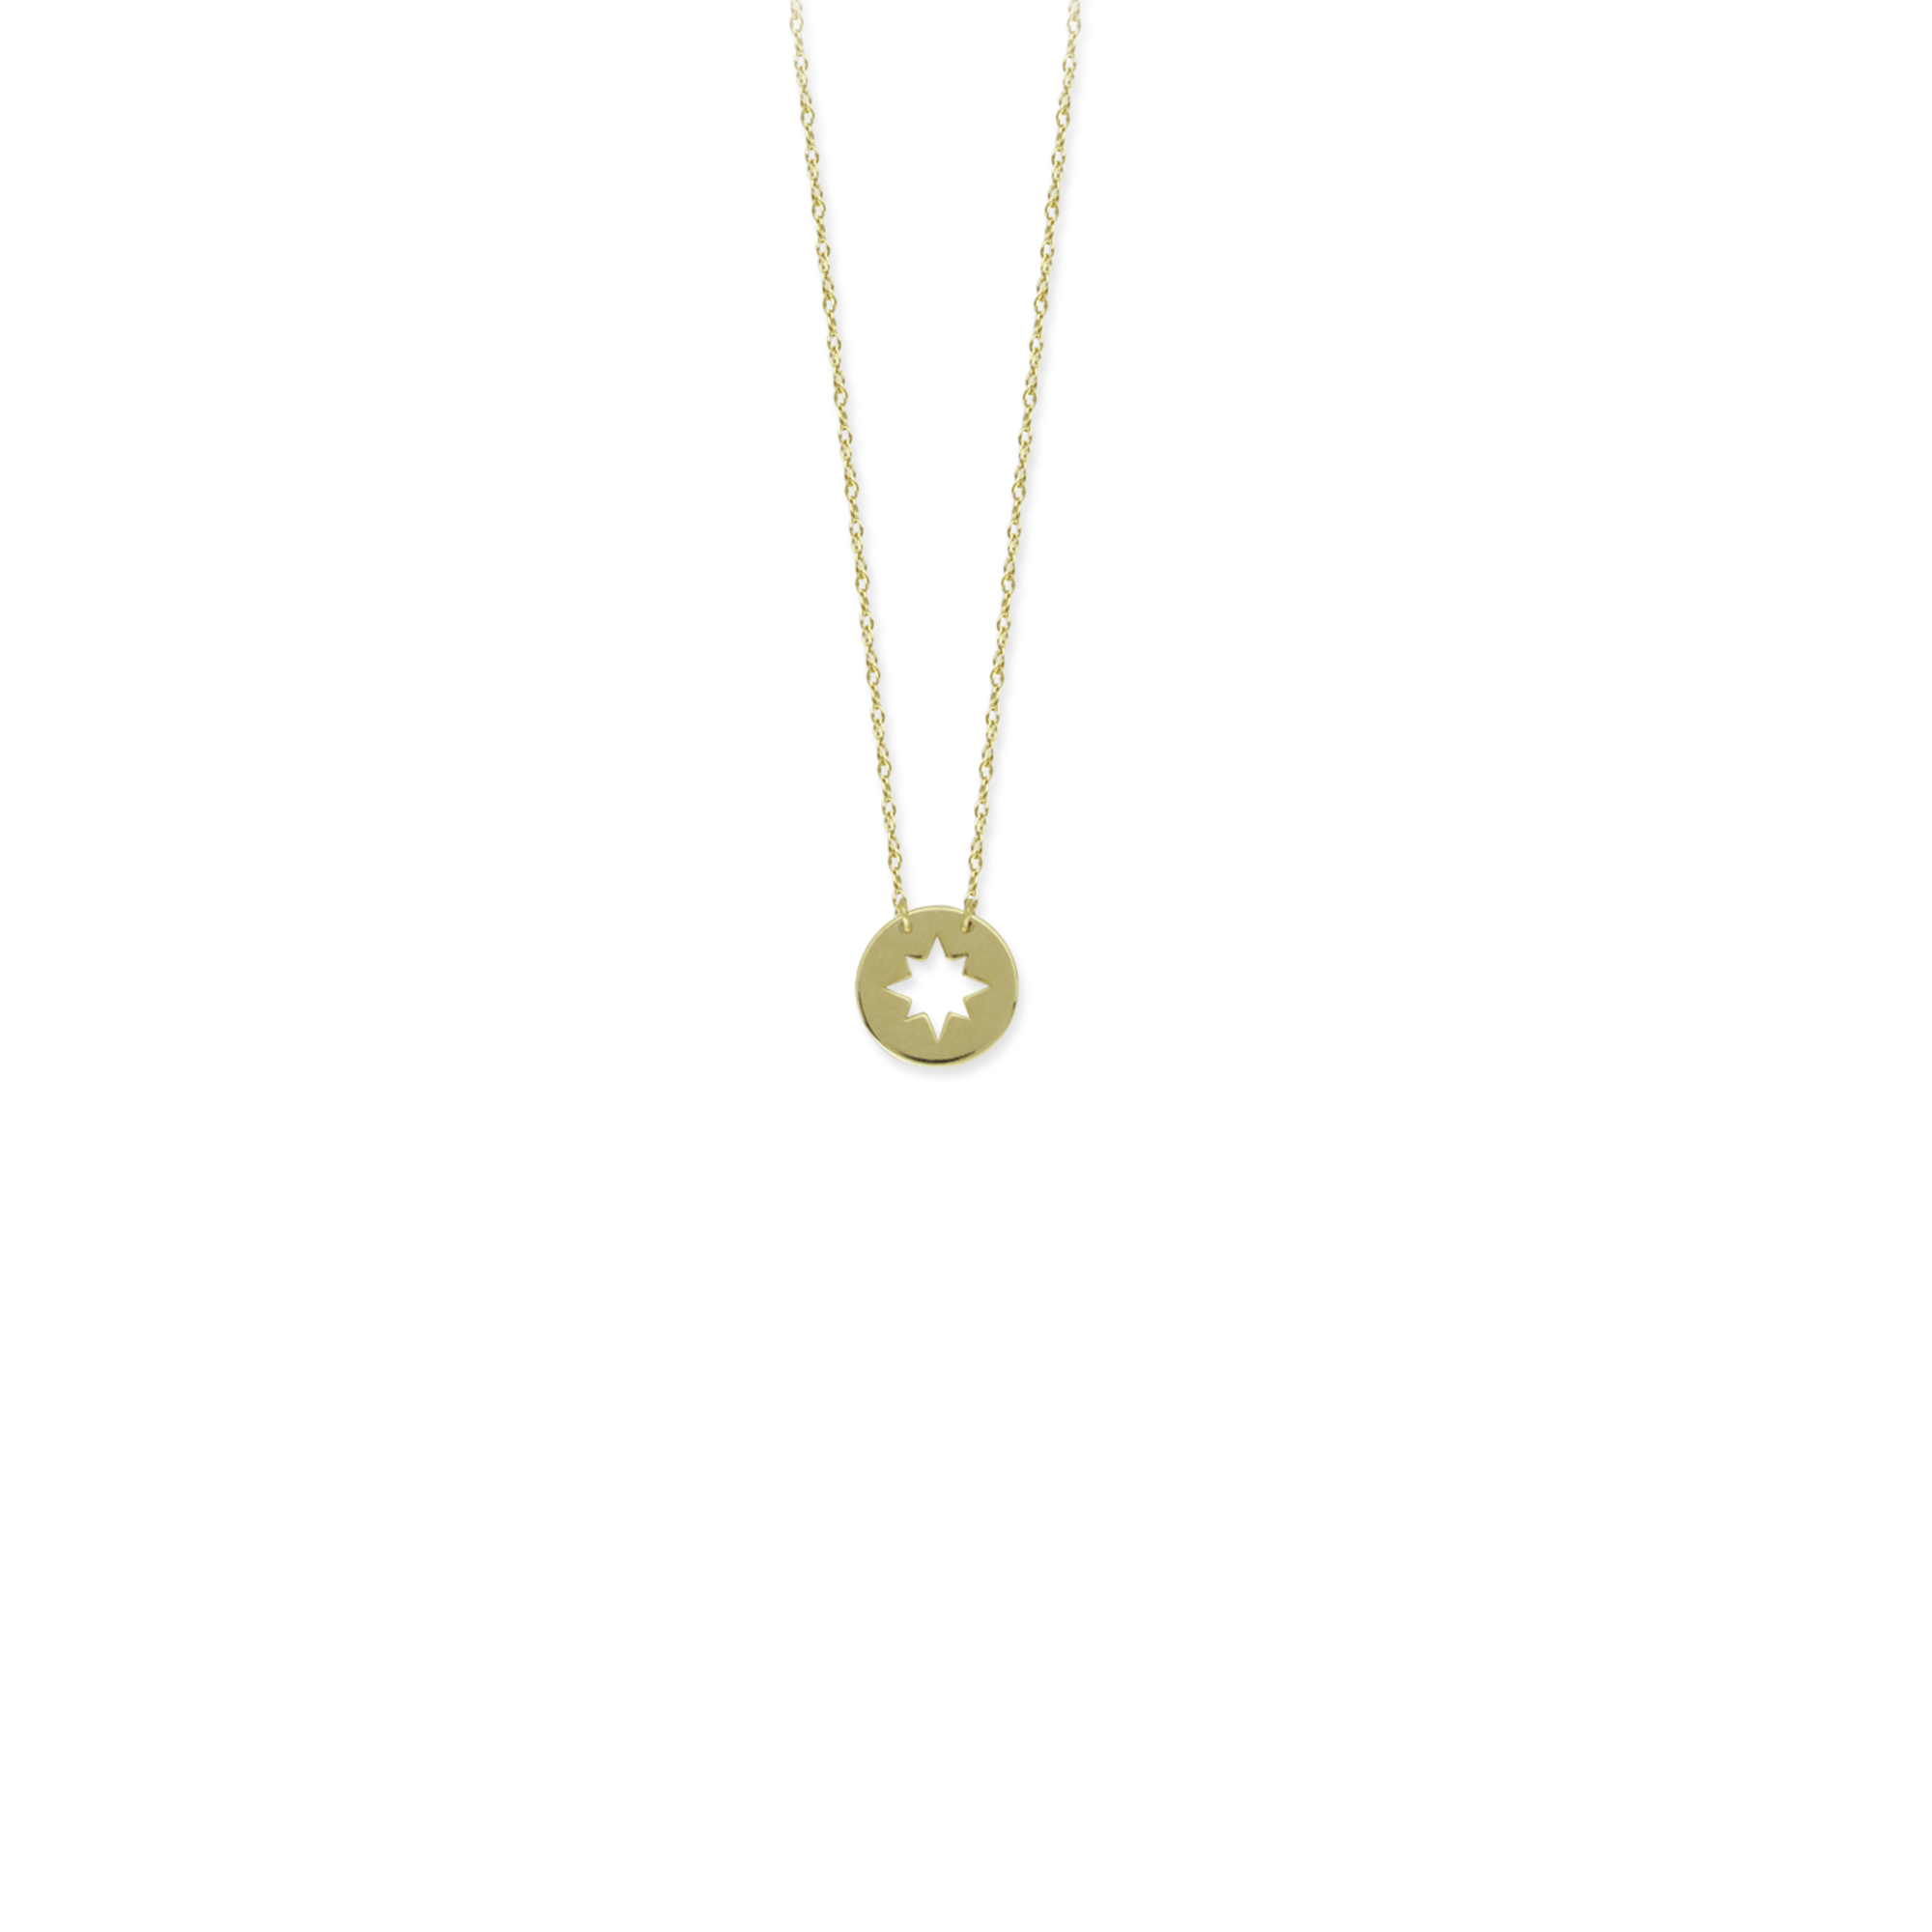 Star Pendant, 14Kt Gold Star Necklace 18